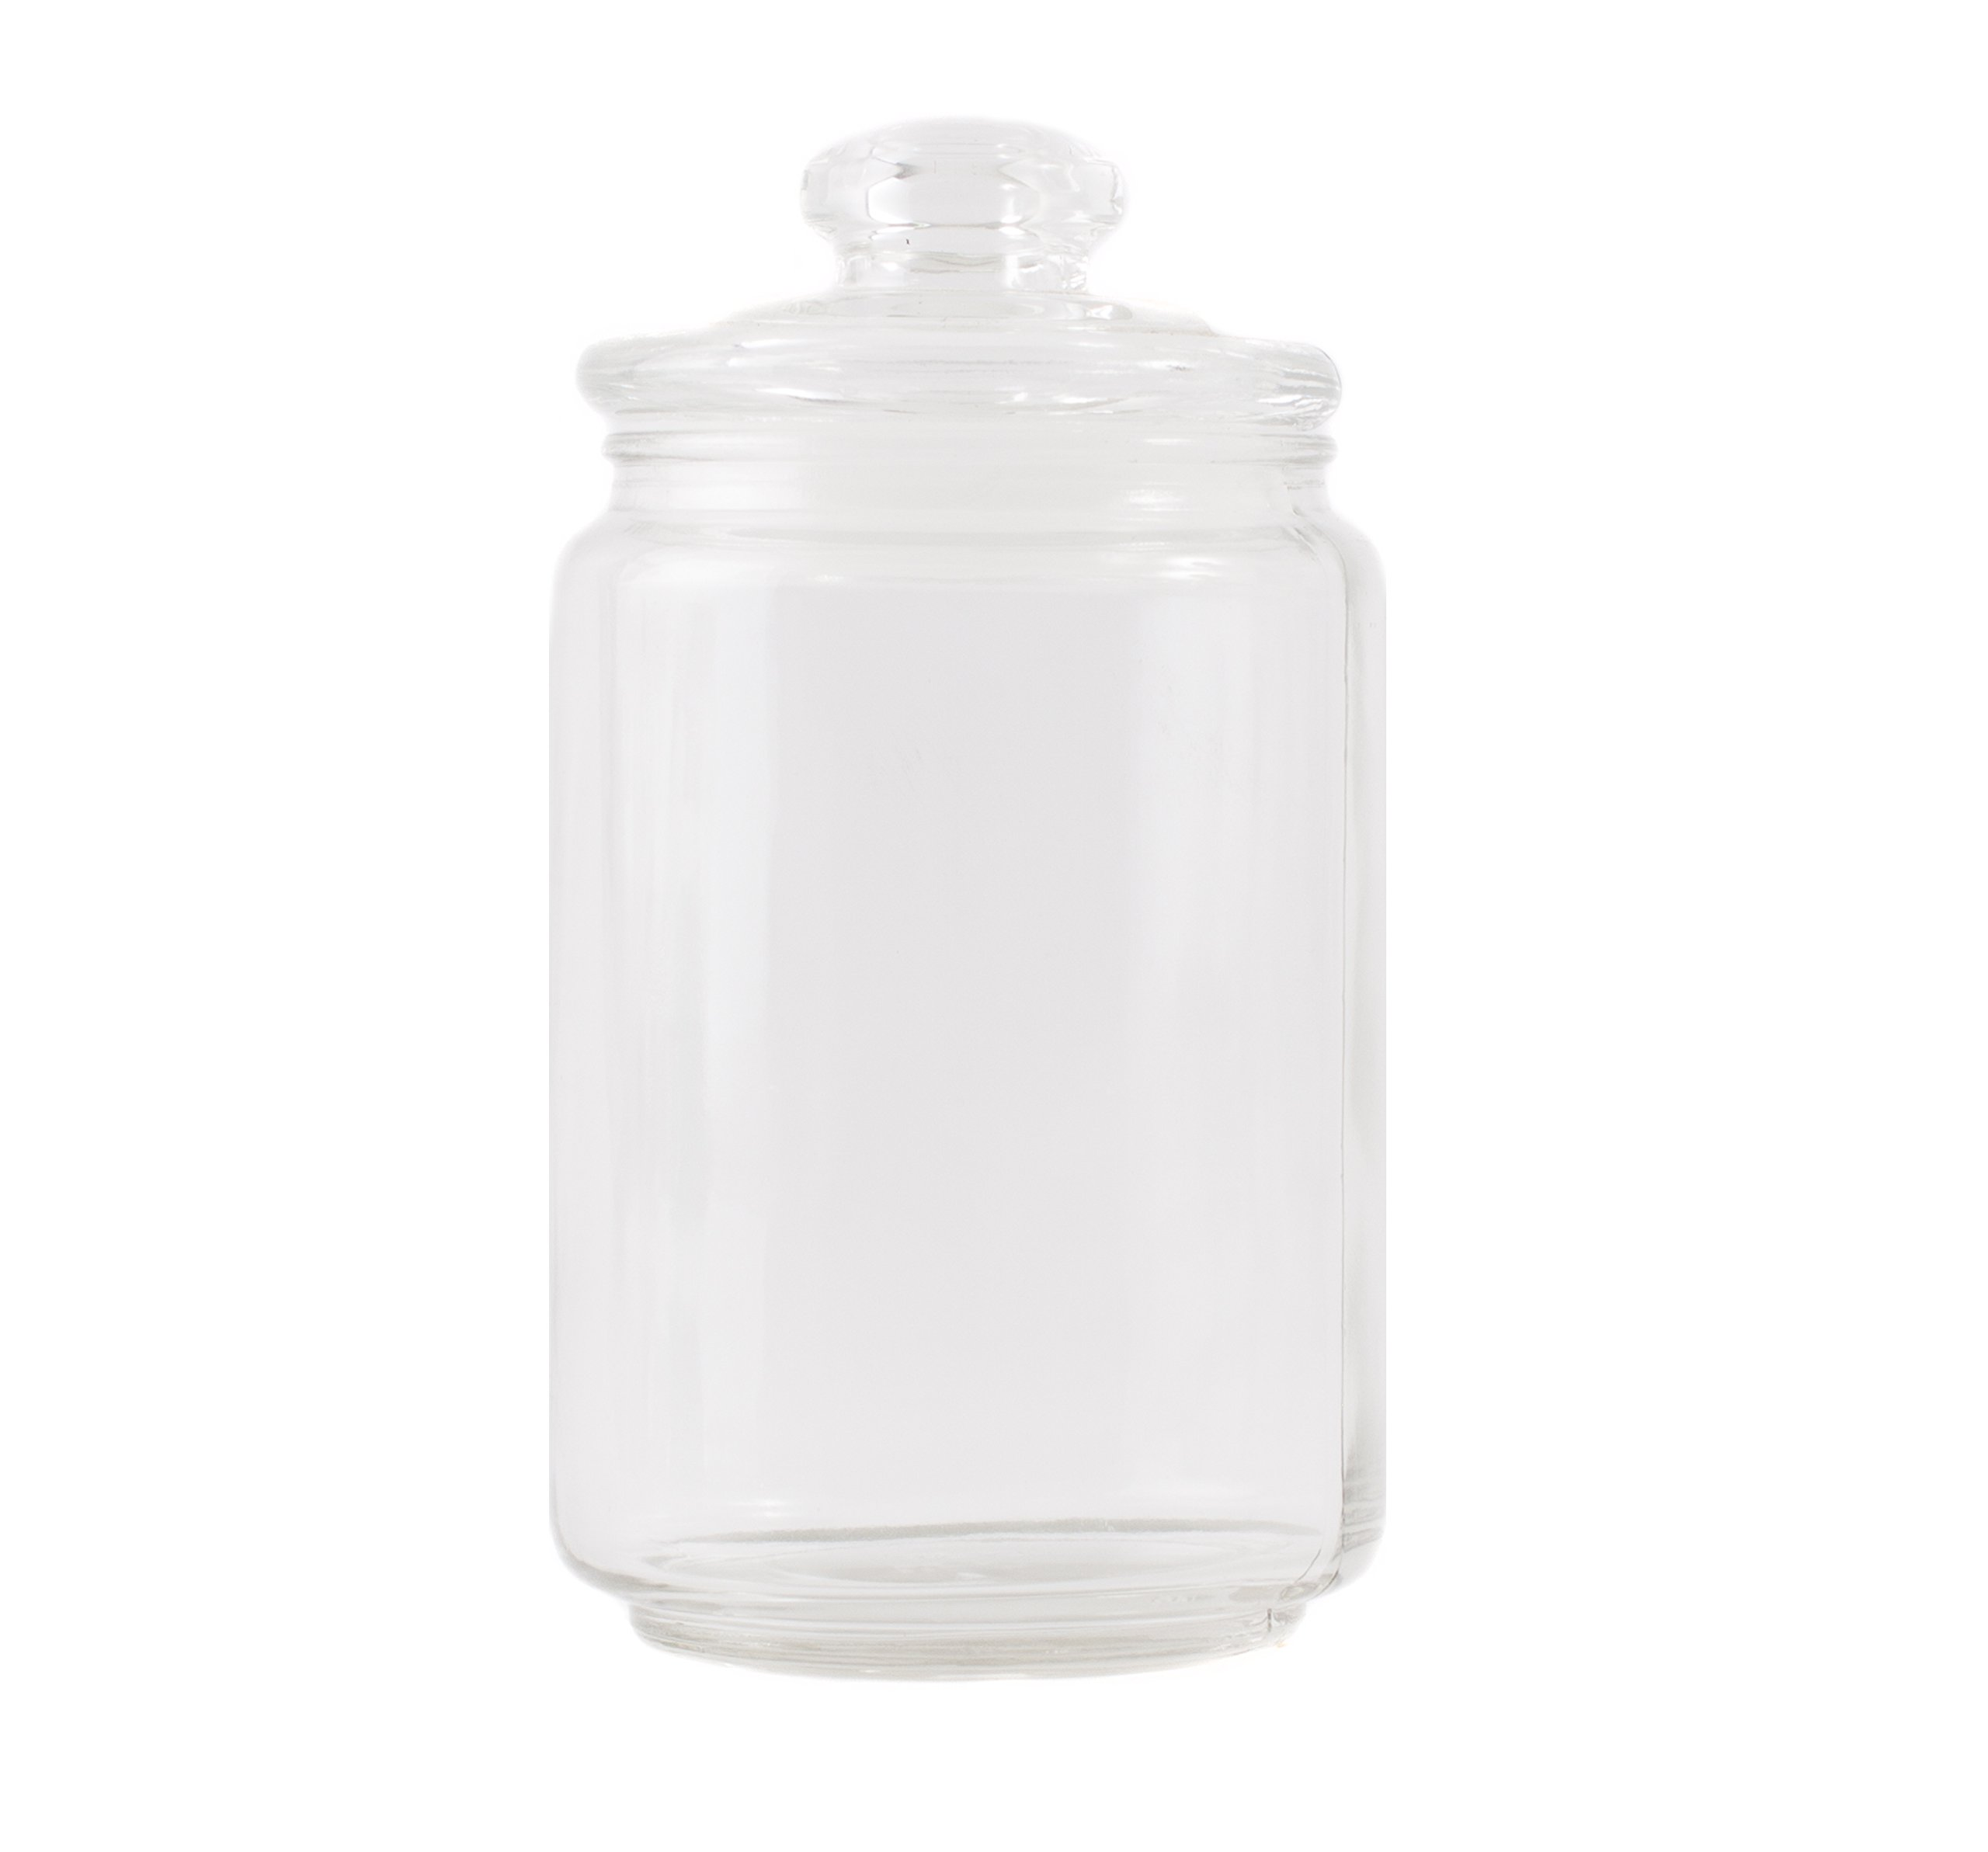 600ml Glass Candle Jar with Lid x 24